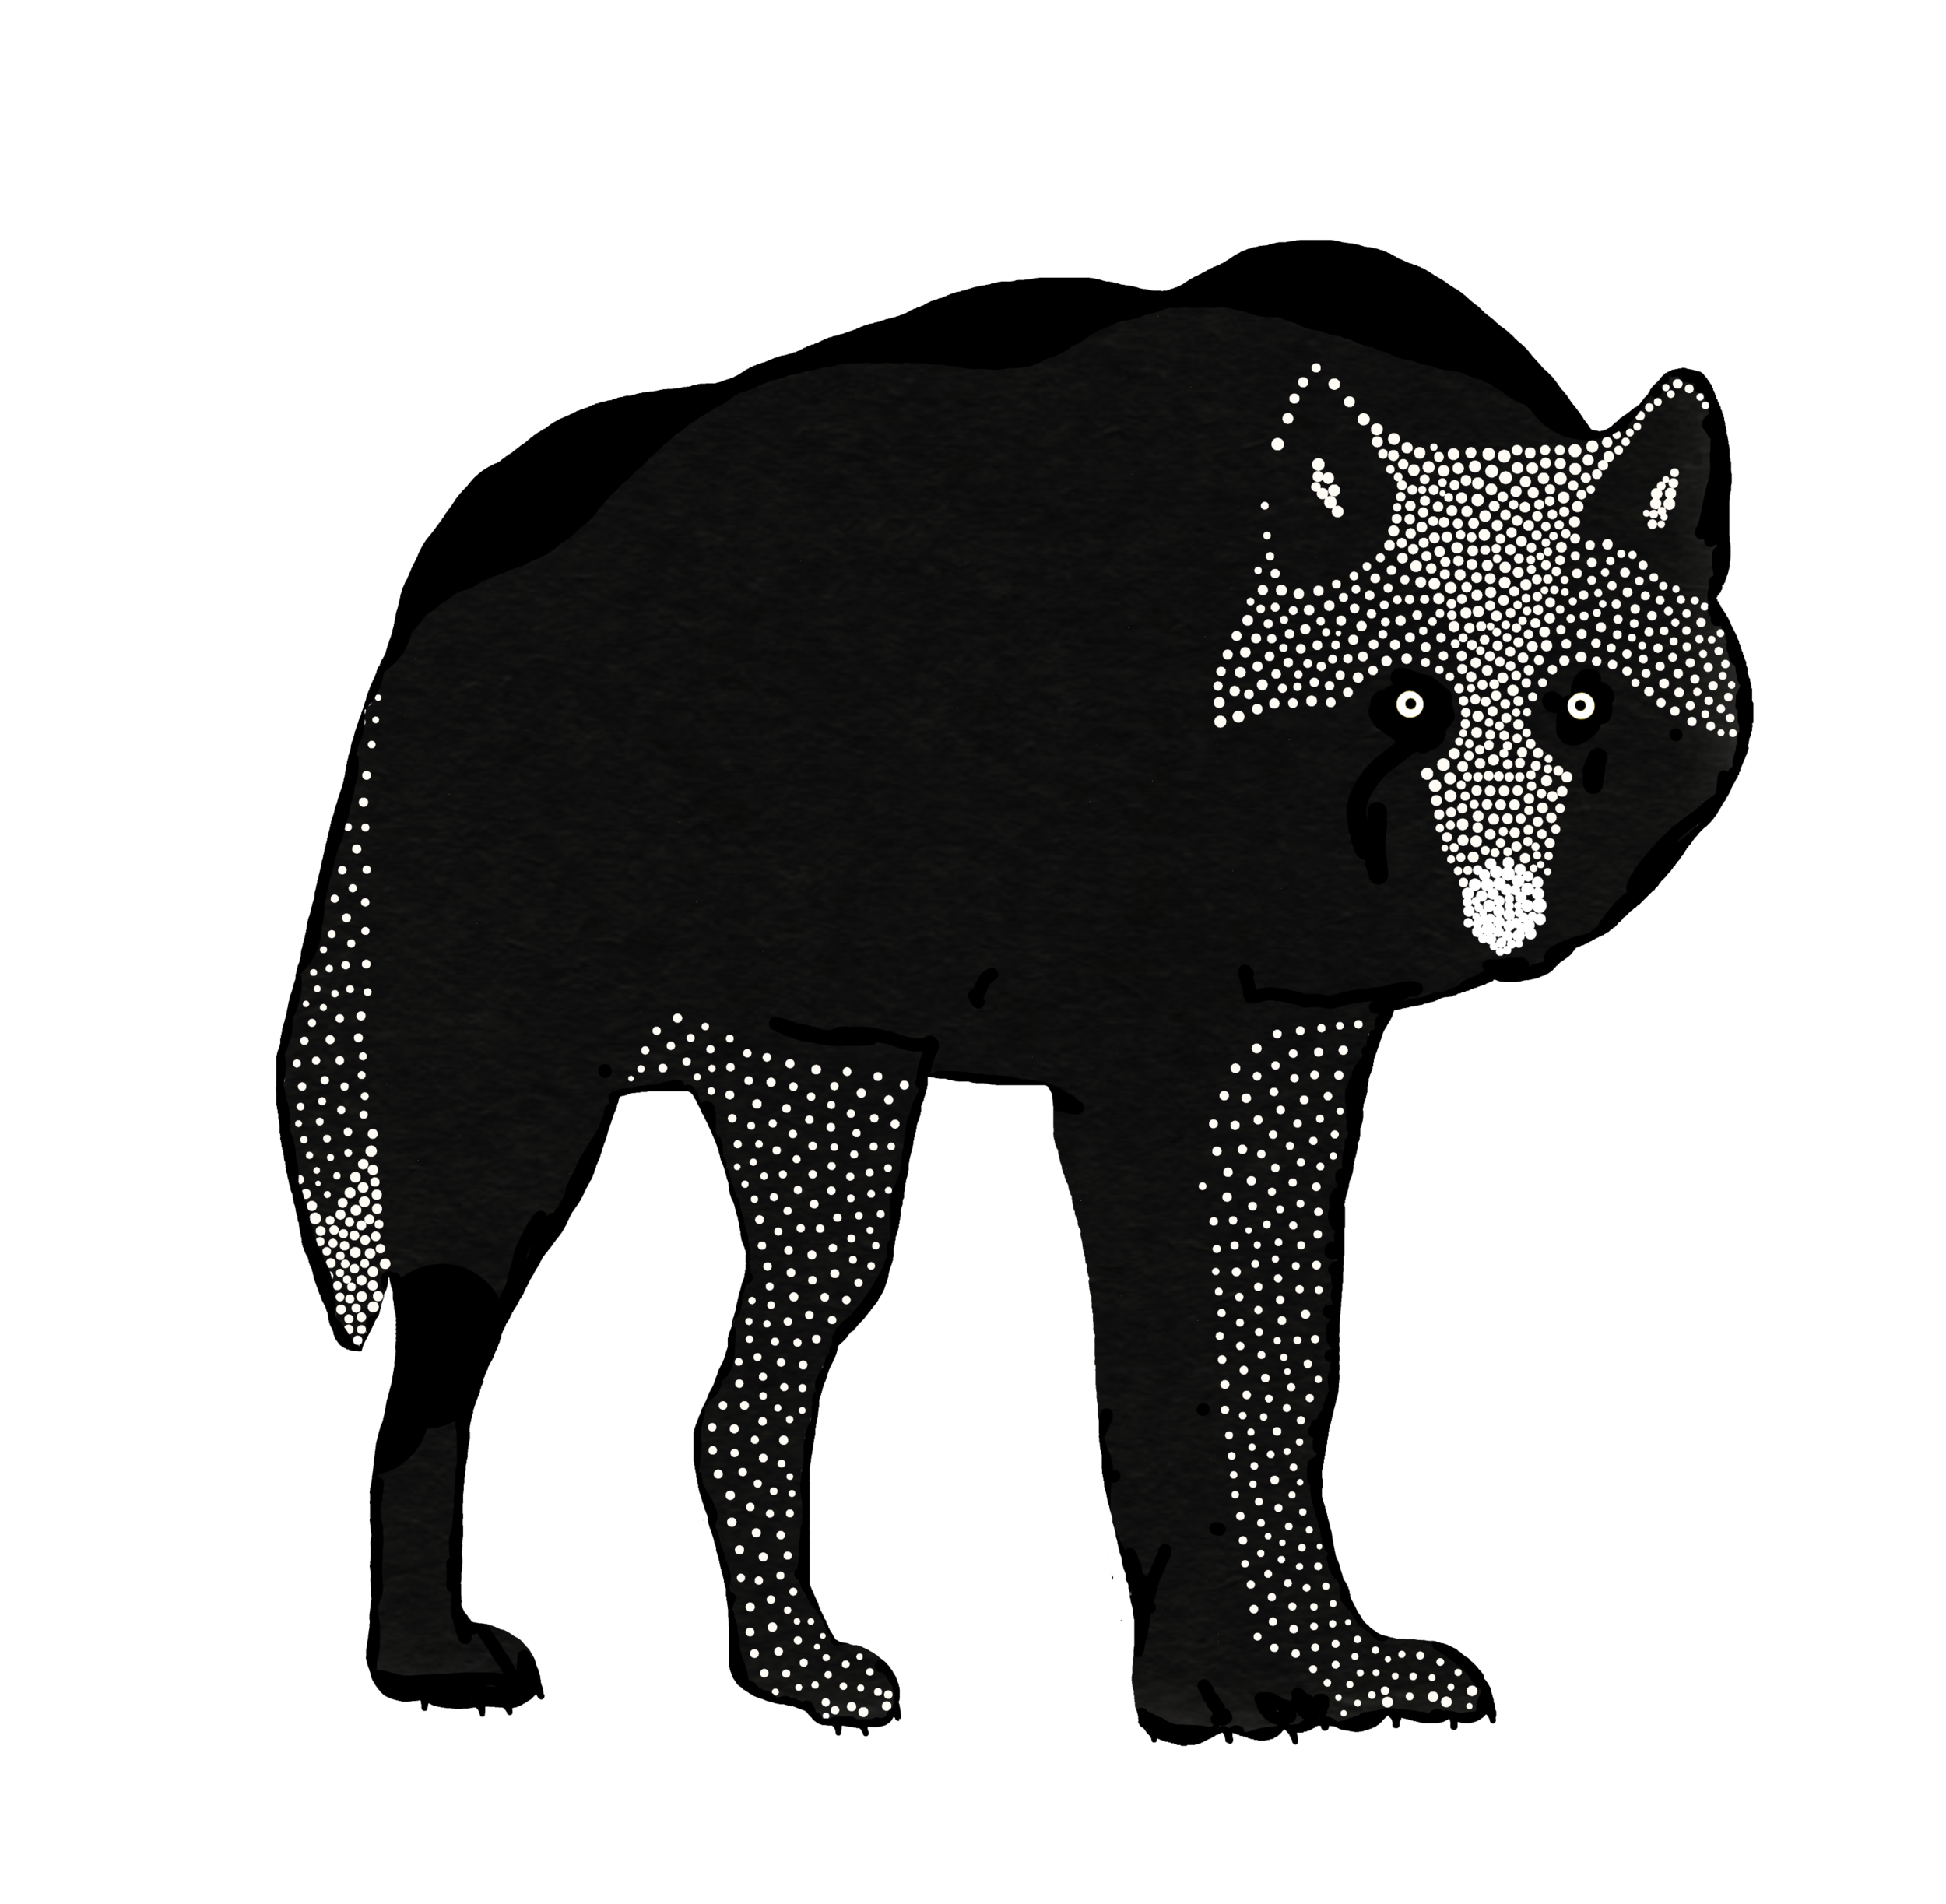 wolf-1F-1.png